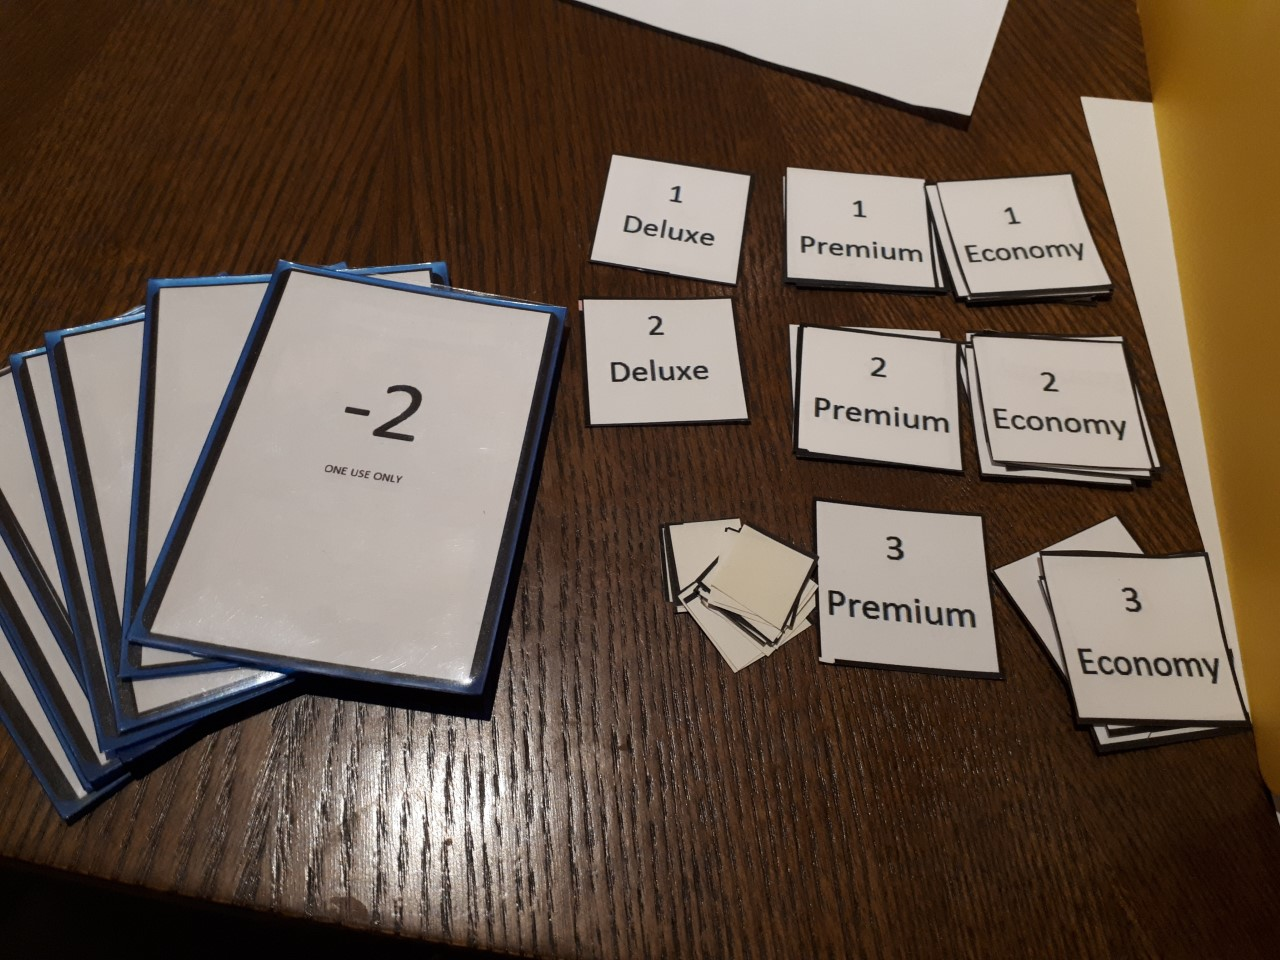 Goods & shares tokens on the right, and the pricing vote cards on the left.